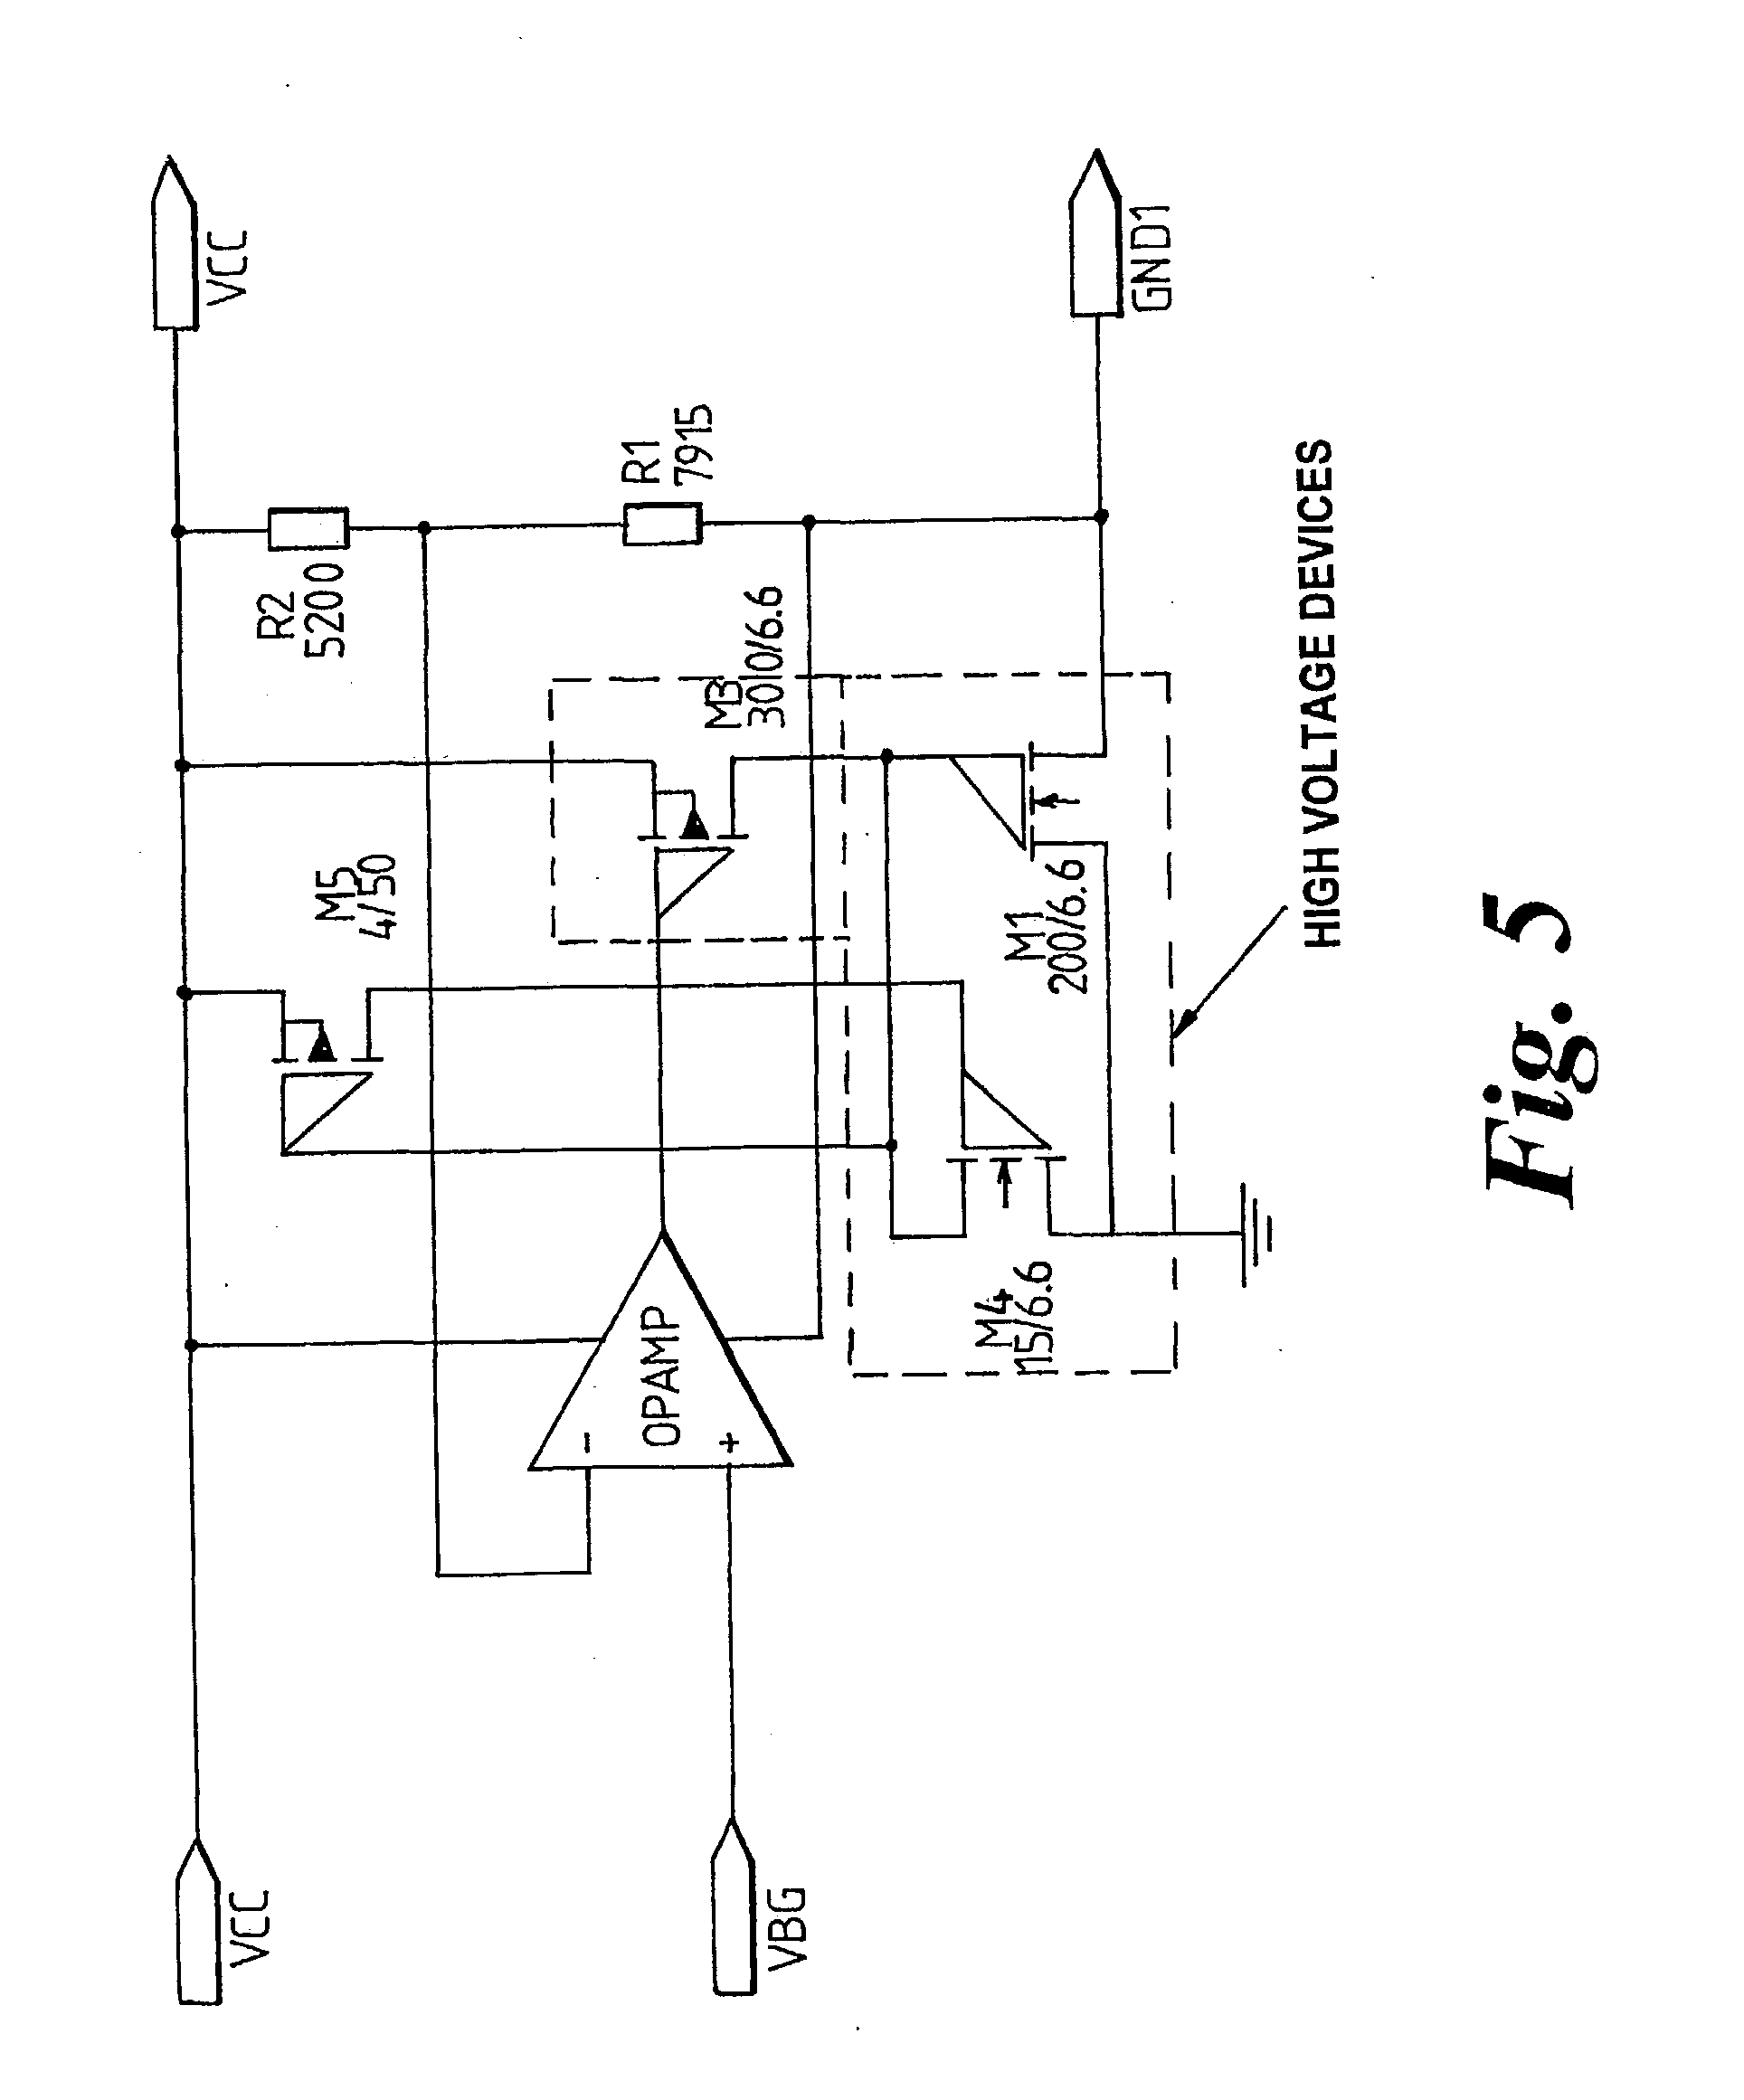 patent us20030164697 - inductive proximity sensor and related methods